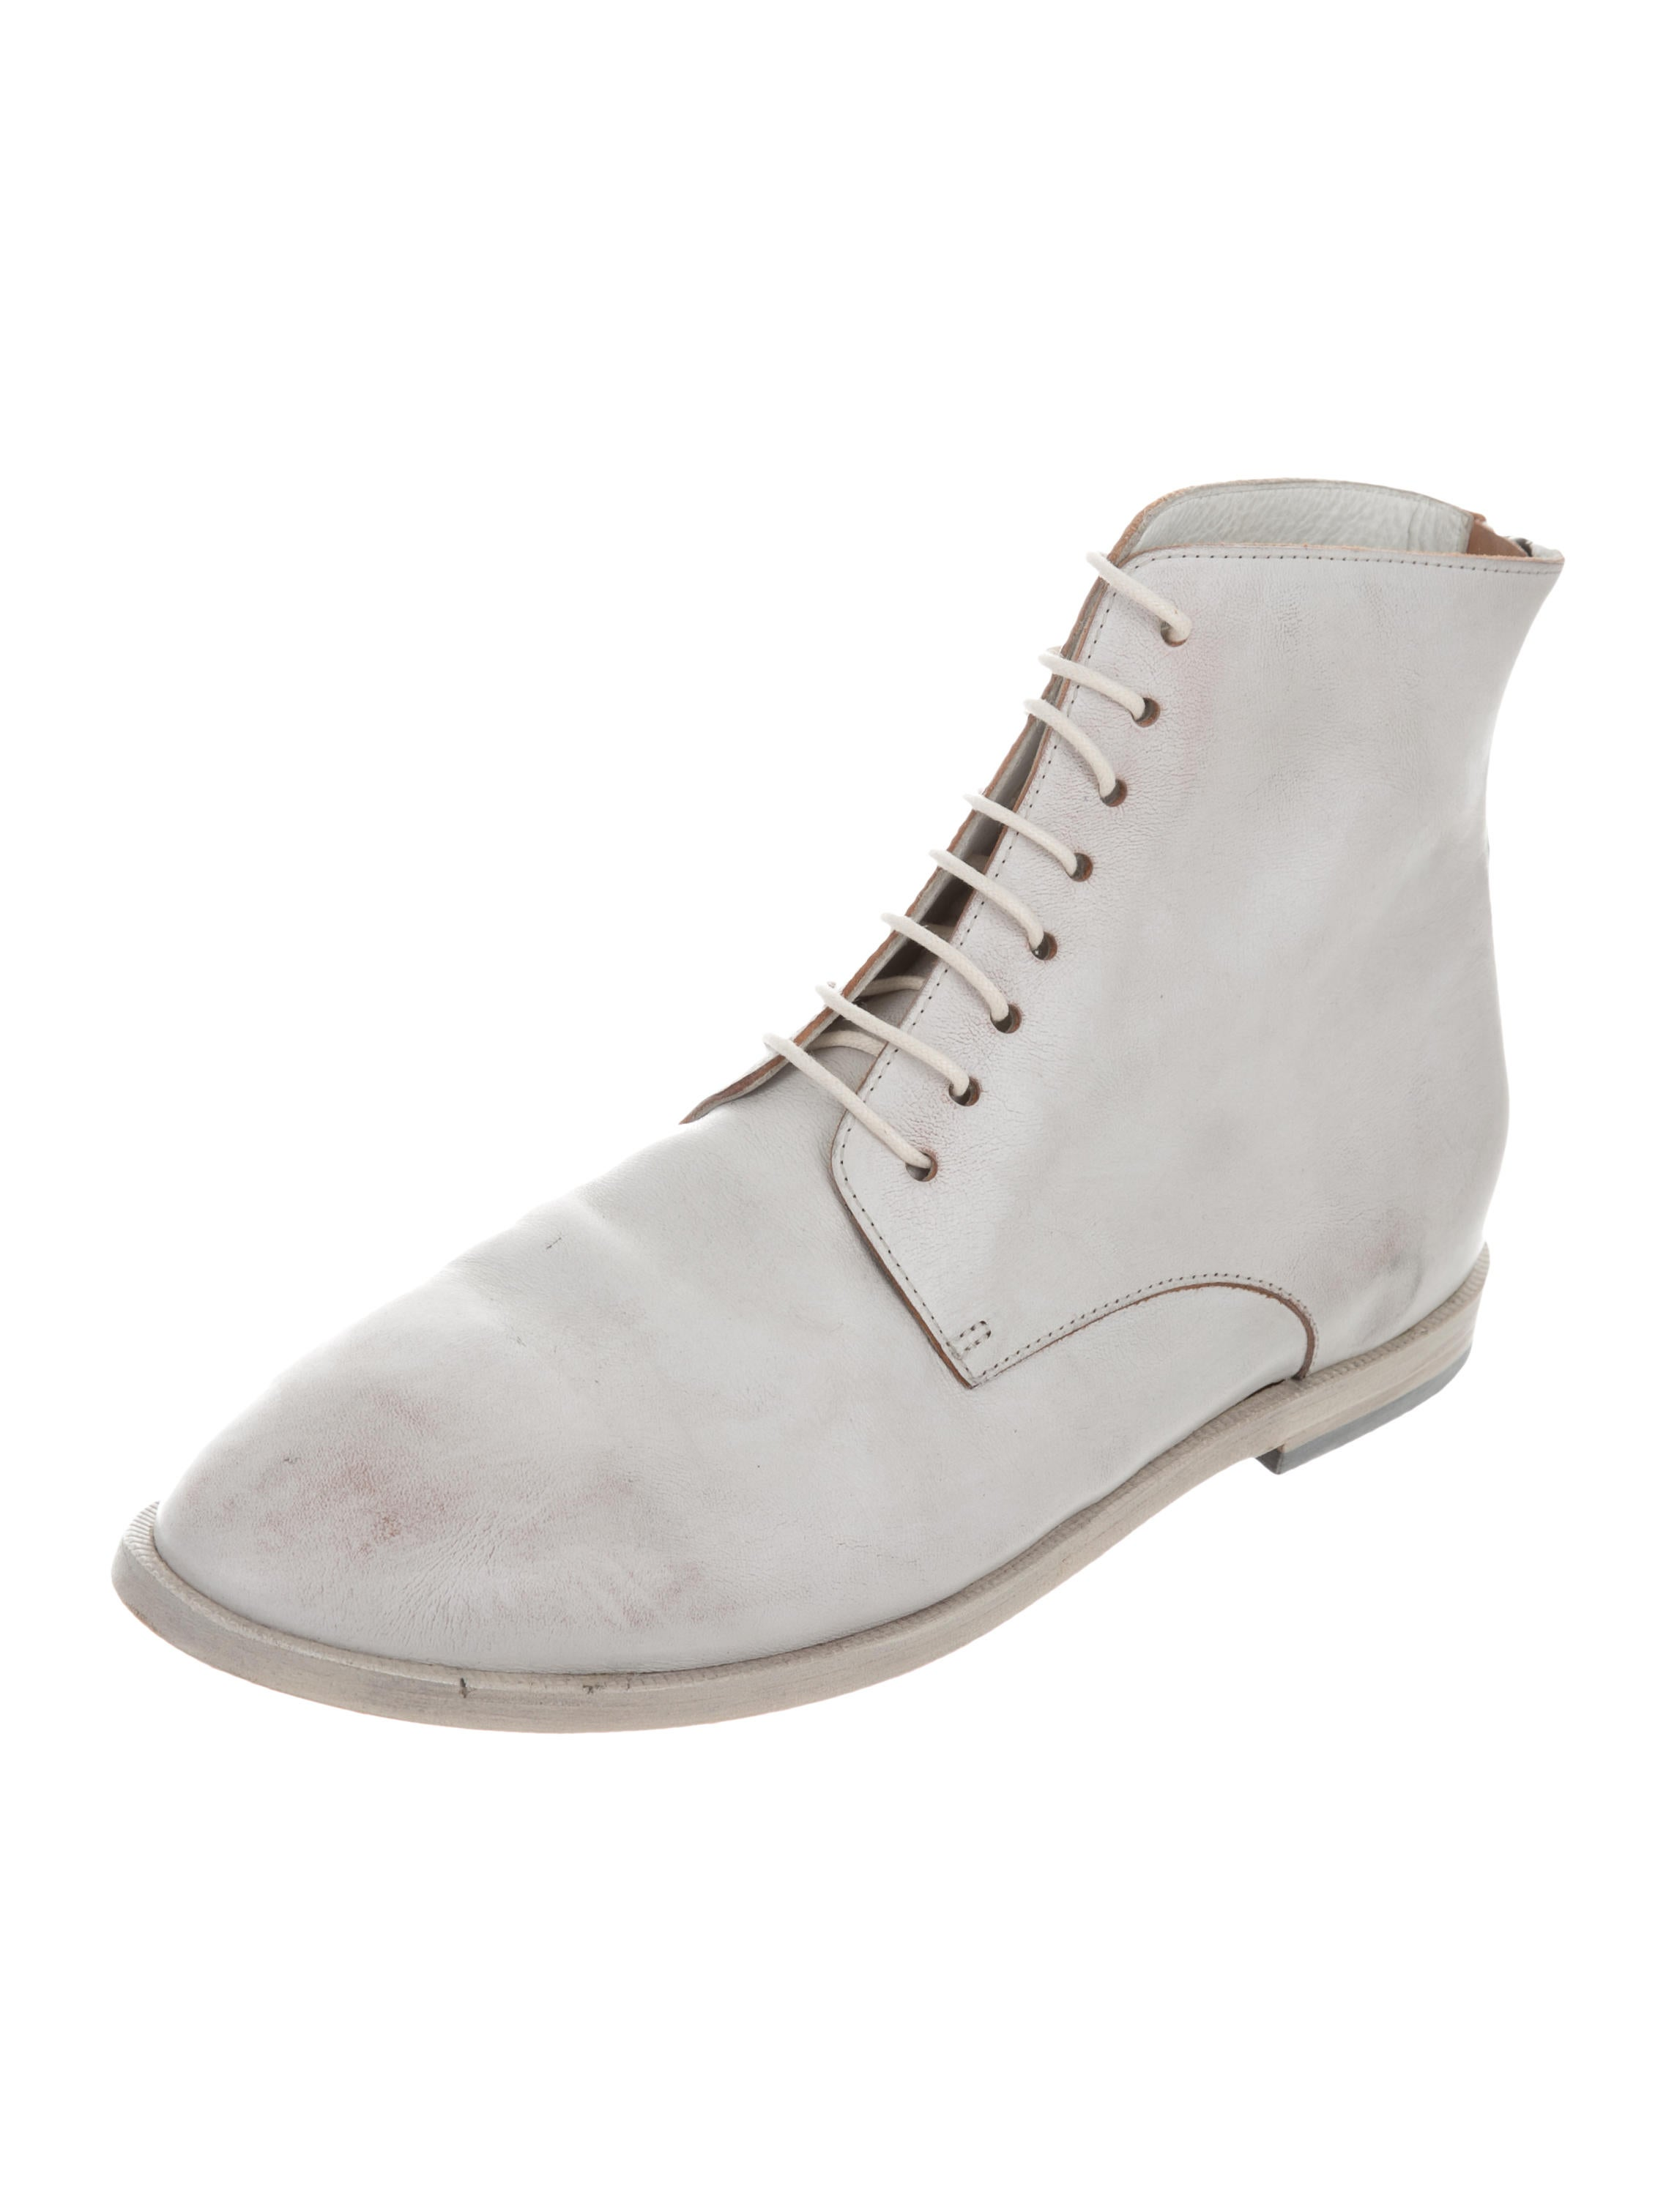 Marsèll Mars Distressed Boots w/ Tags factory outlet sale online best prices sale online rXiAG